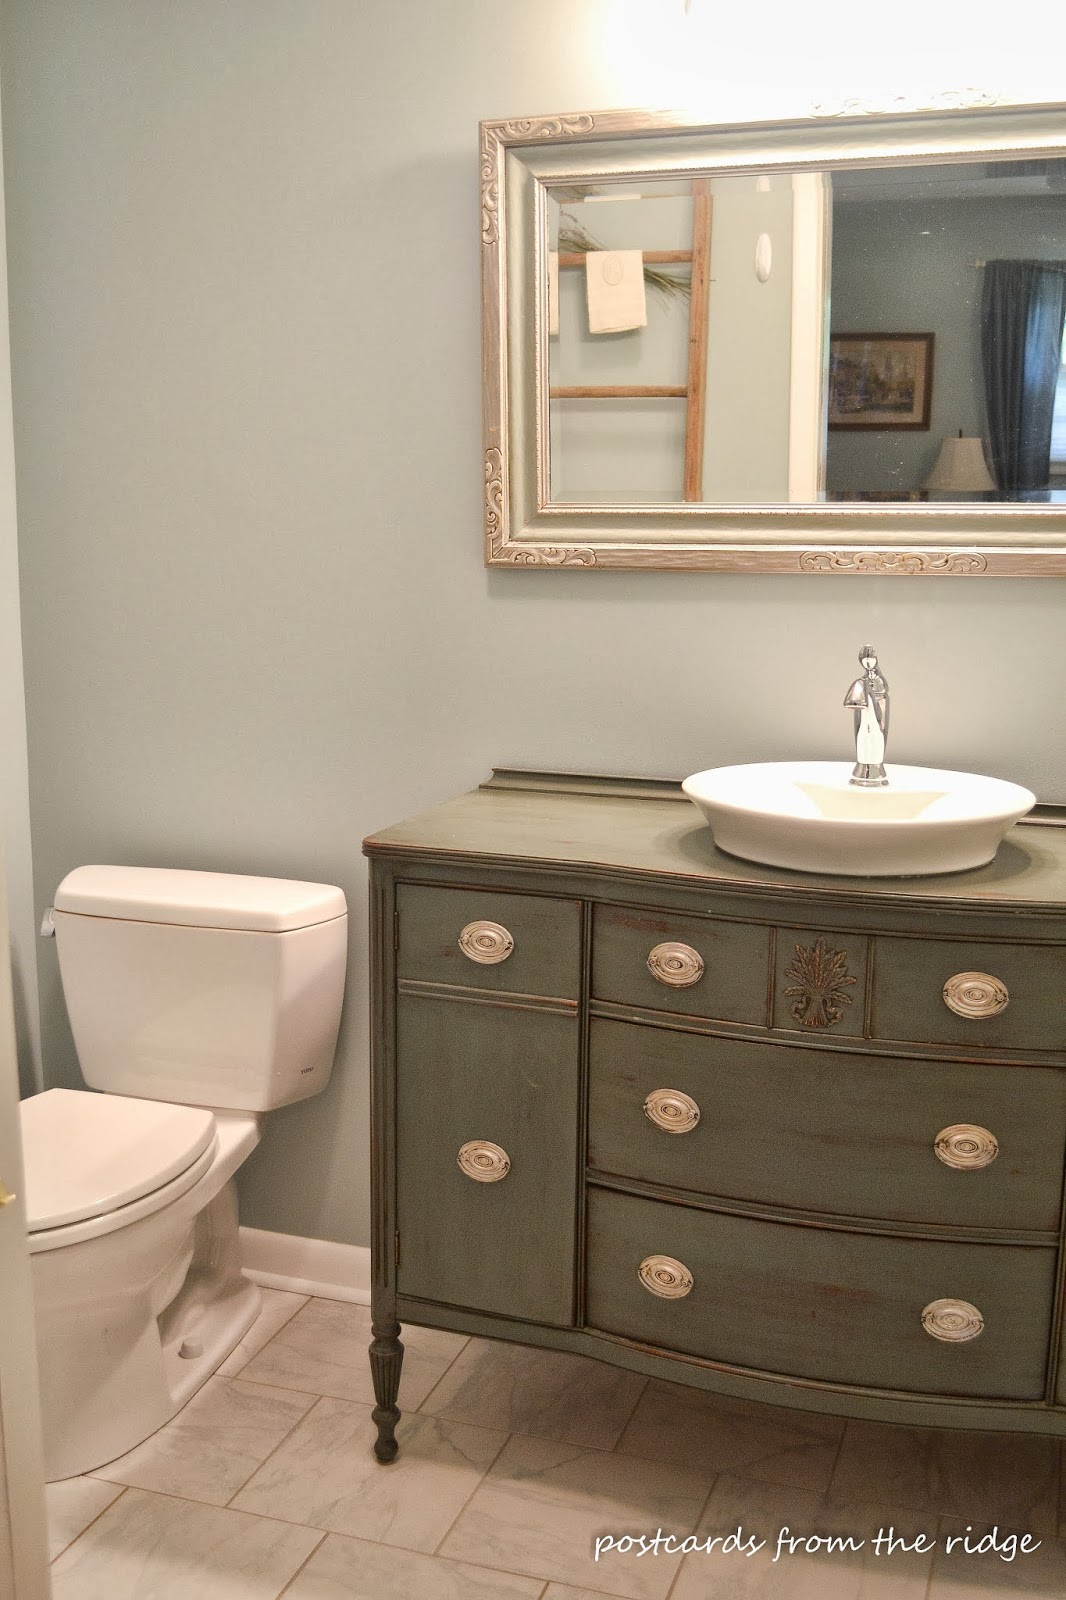 Nice bathroom vanity made from a dining room buffet. Postcards from the Ridge